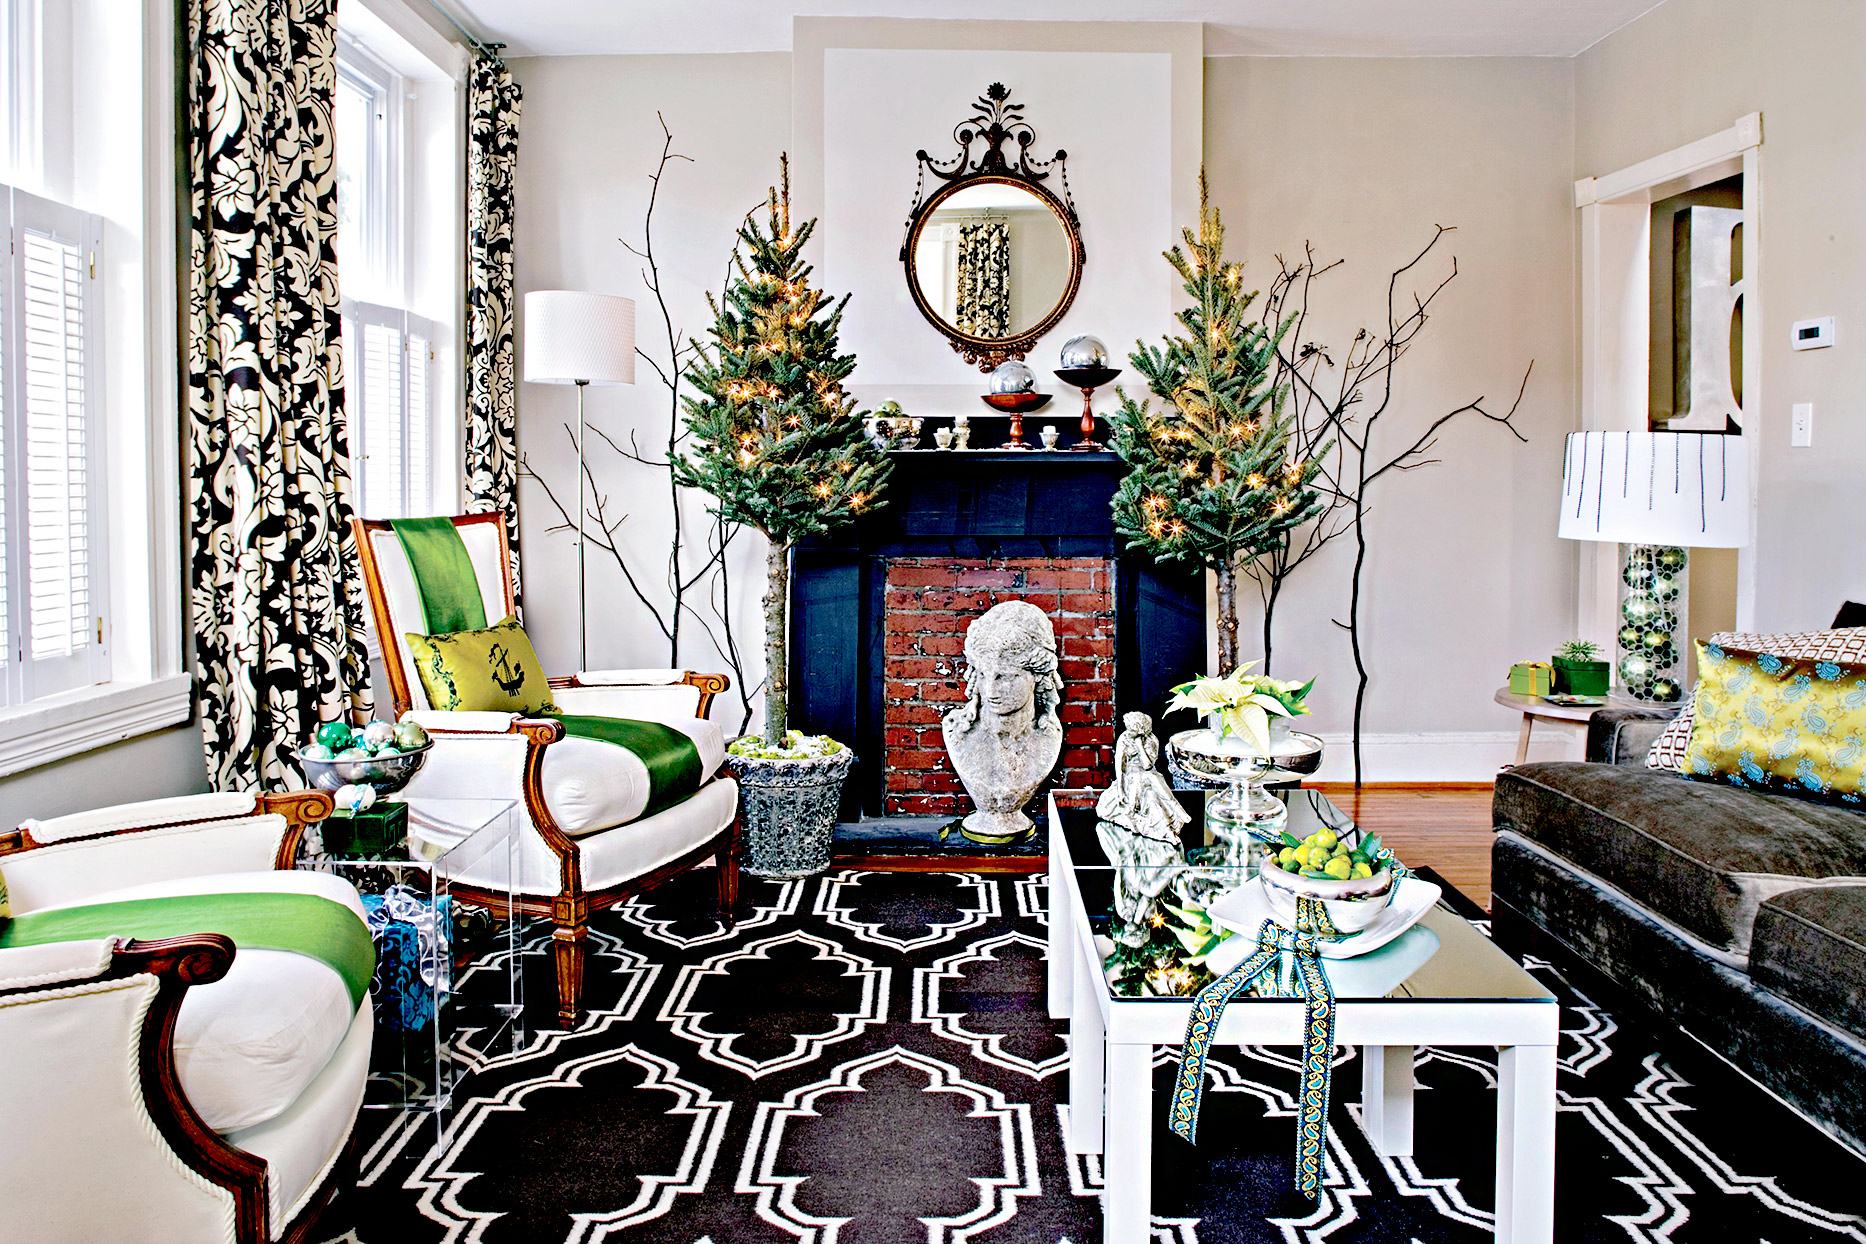 Living room with geometric patterns and tall Christmas trees